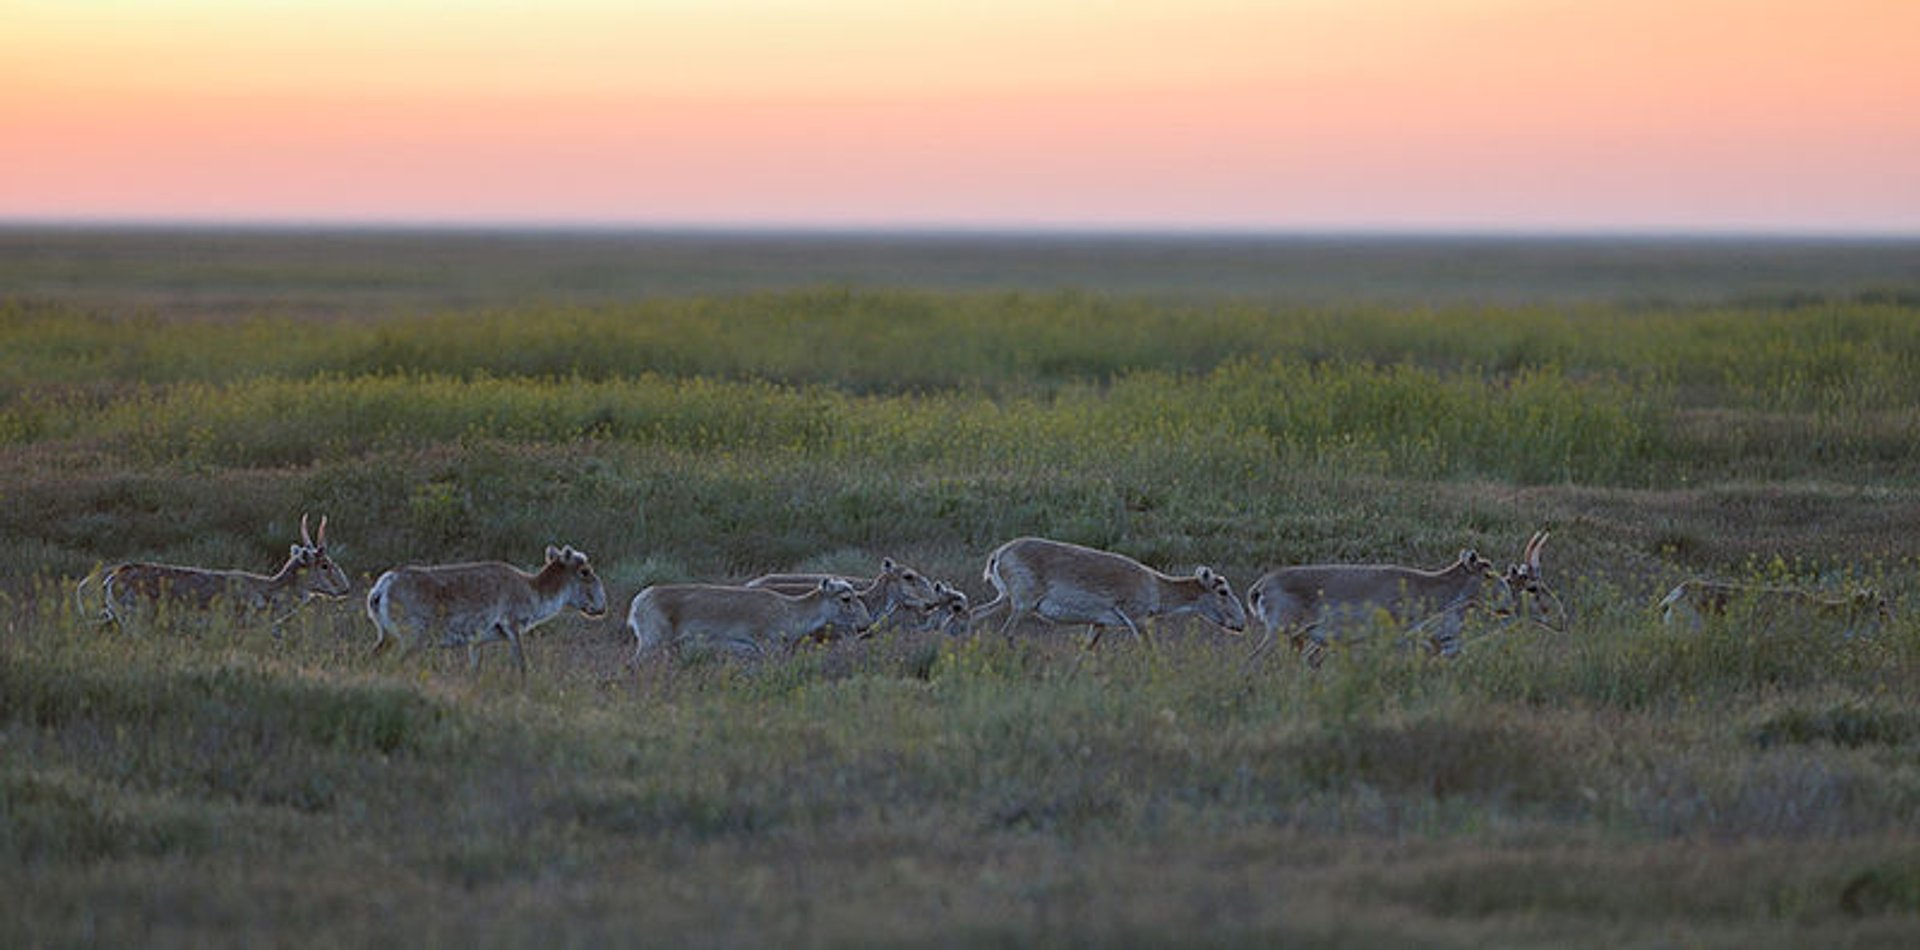 Saiga Antelopes in Kazakhstan - Best Season